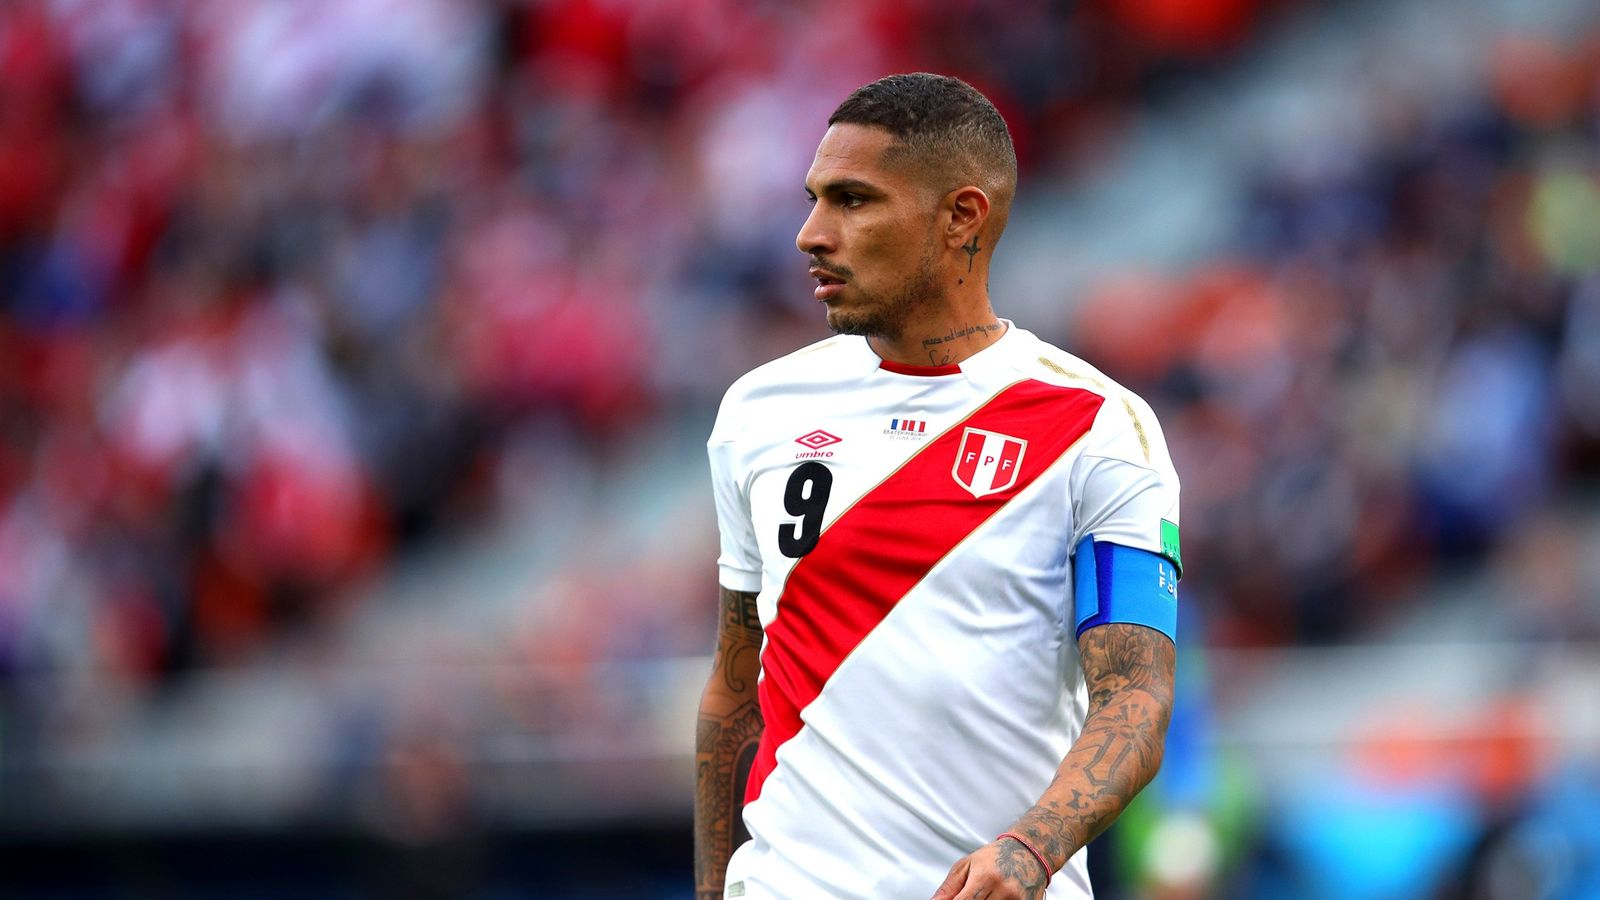 Paolo Guerrero in action during the 2018 FIFA World Cup Russia match between France and Peru ...